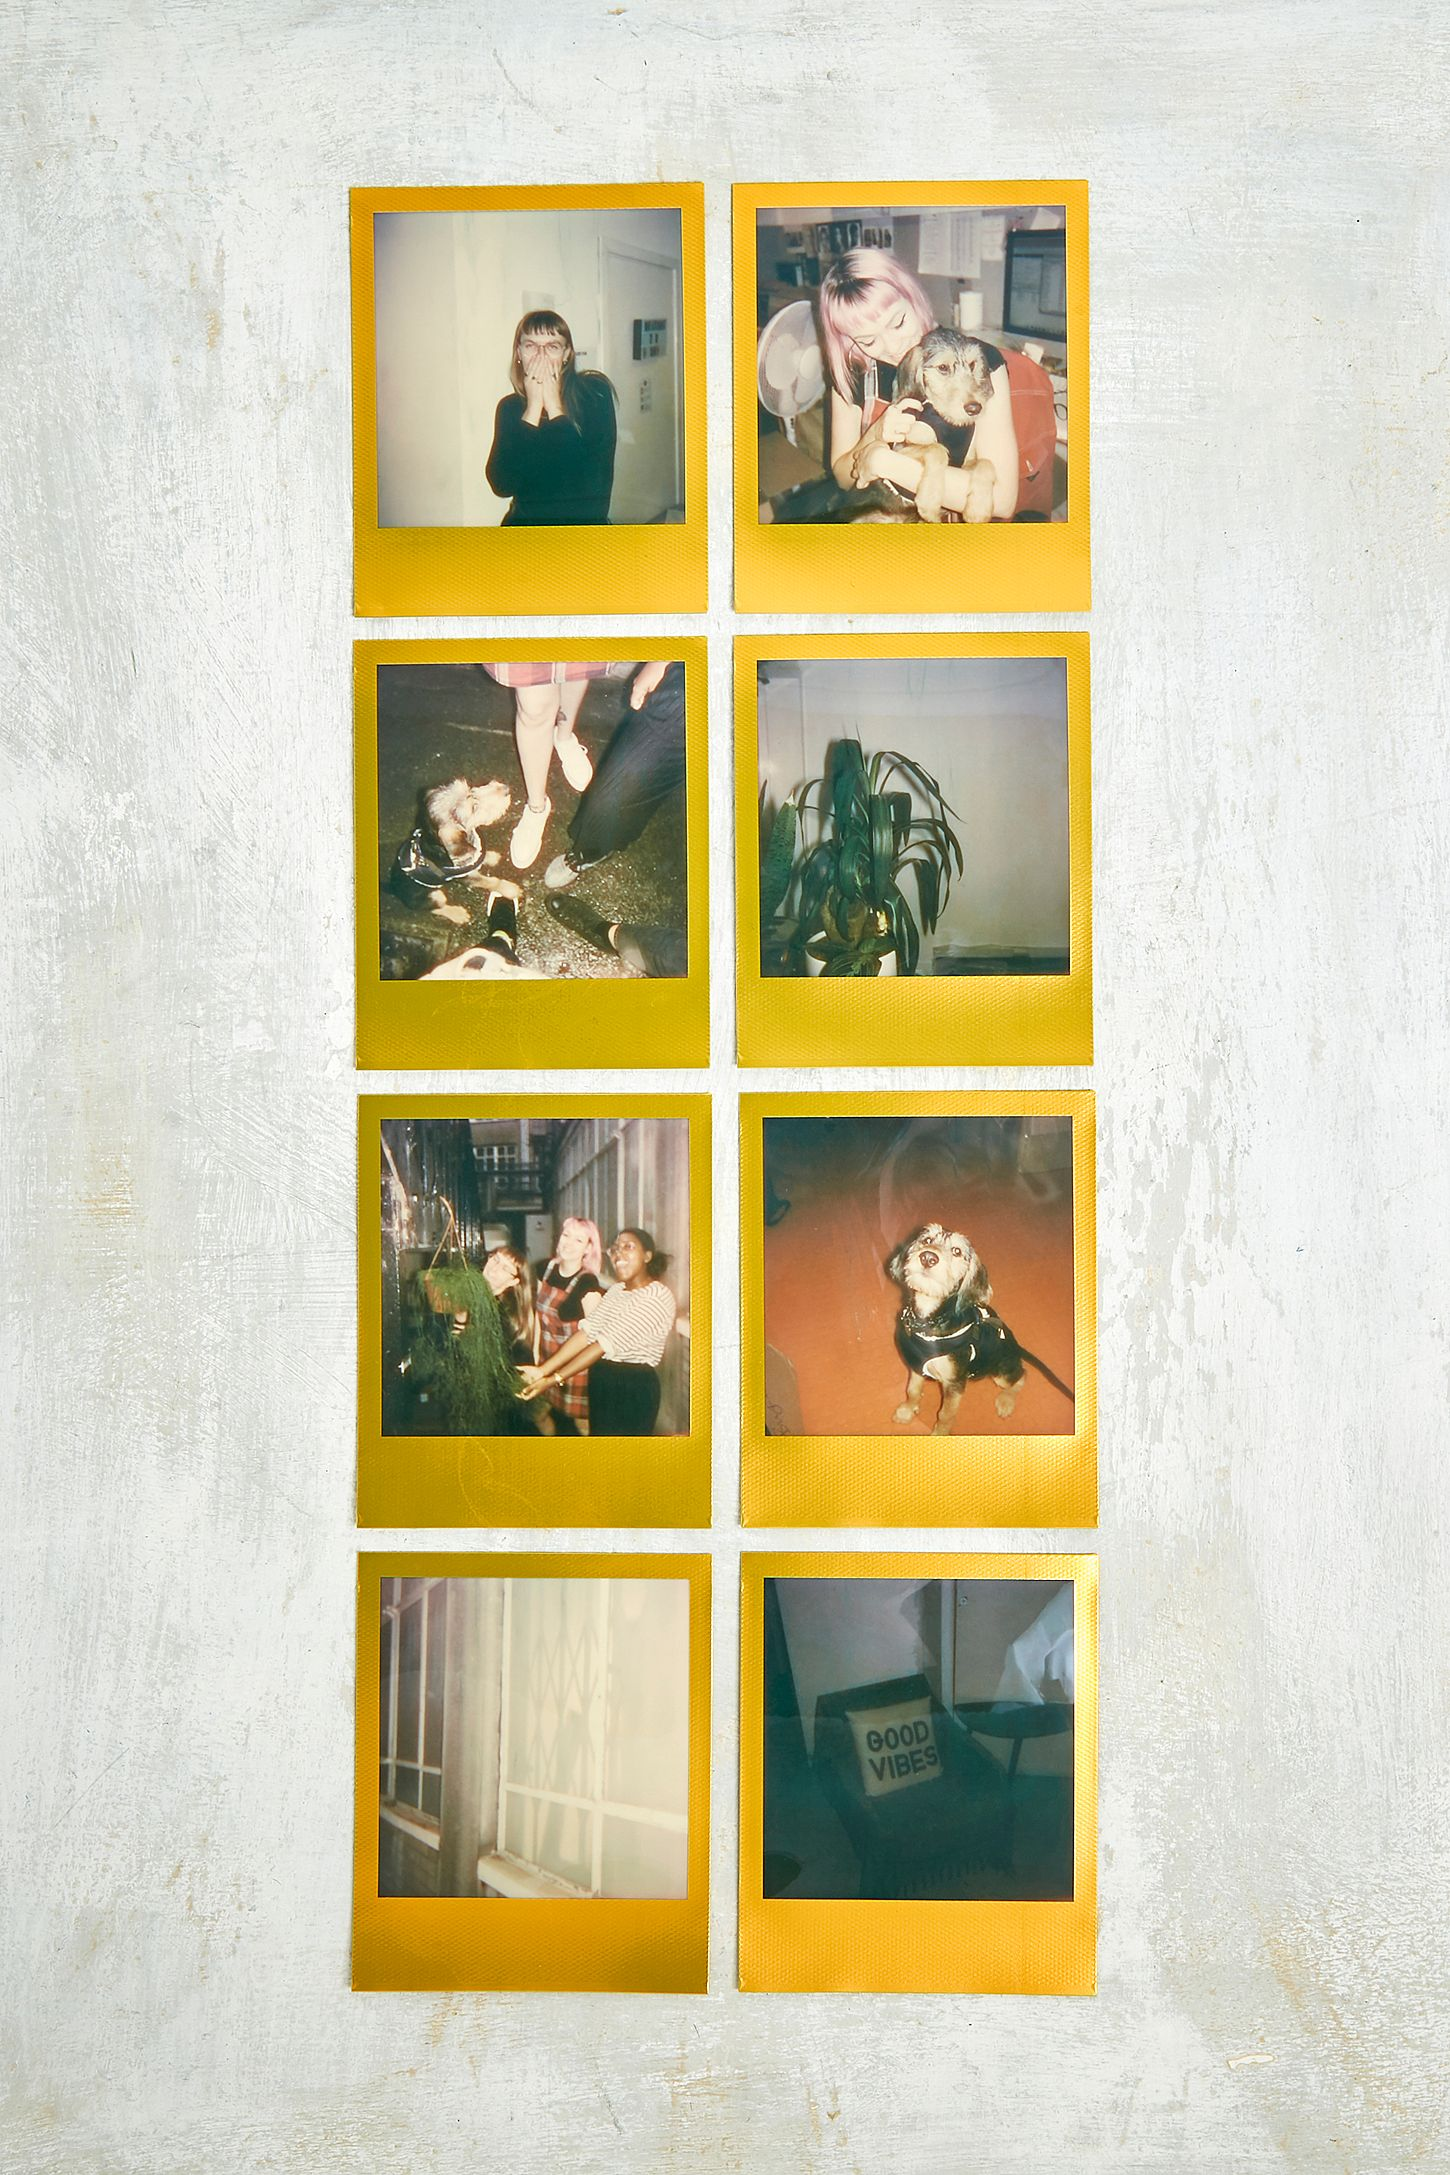 535c9a43cef Polaroid Originals Gold Frame 600 Instant Film. Click on image to zoom.  Hover to zoom. Double Tap to Zoom